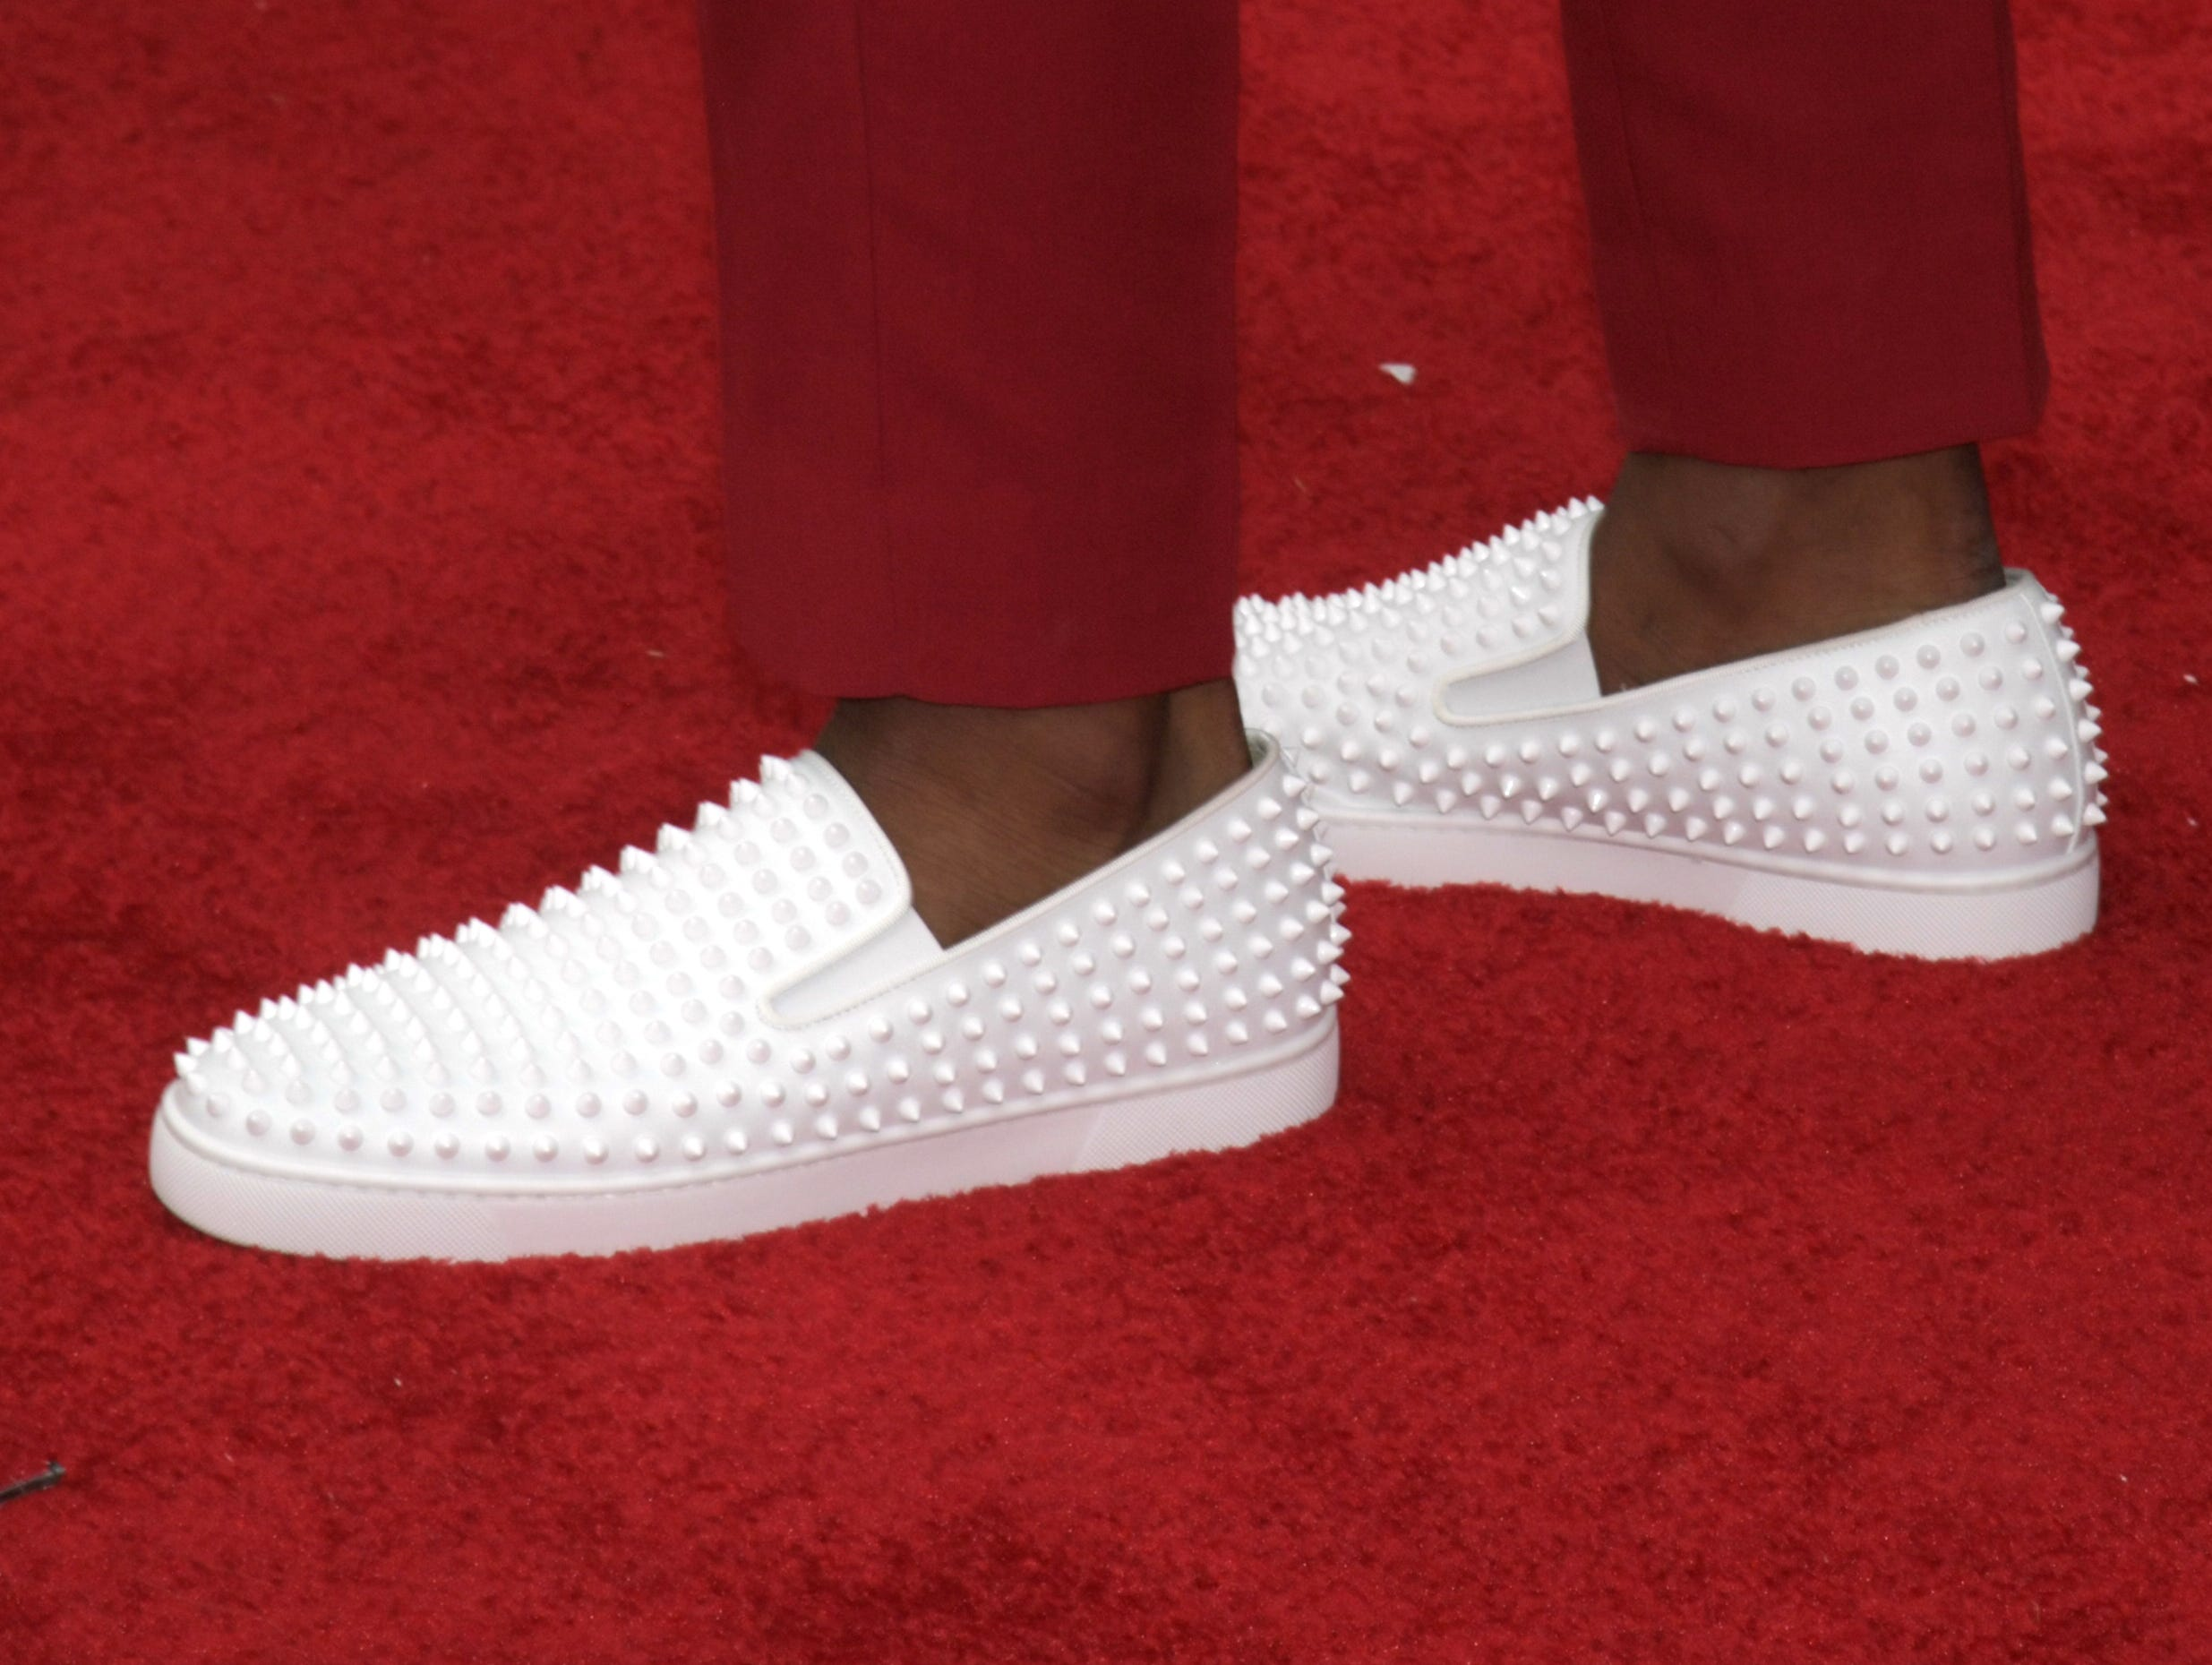 Apr 25, 2019; Nashville, TN, USA; Detail view of the shoes of Greedy Williams (Louisiana State) on the red carpet prior to the first round of the 2019 NFL Draft in Downtown Nashville. Mandatory Credit: Kirby Lee-USA TODAY Sports